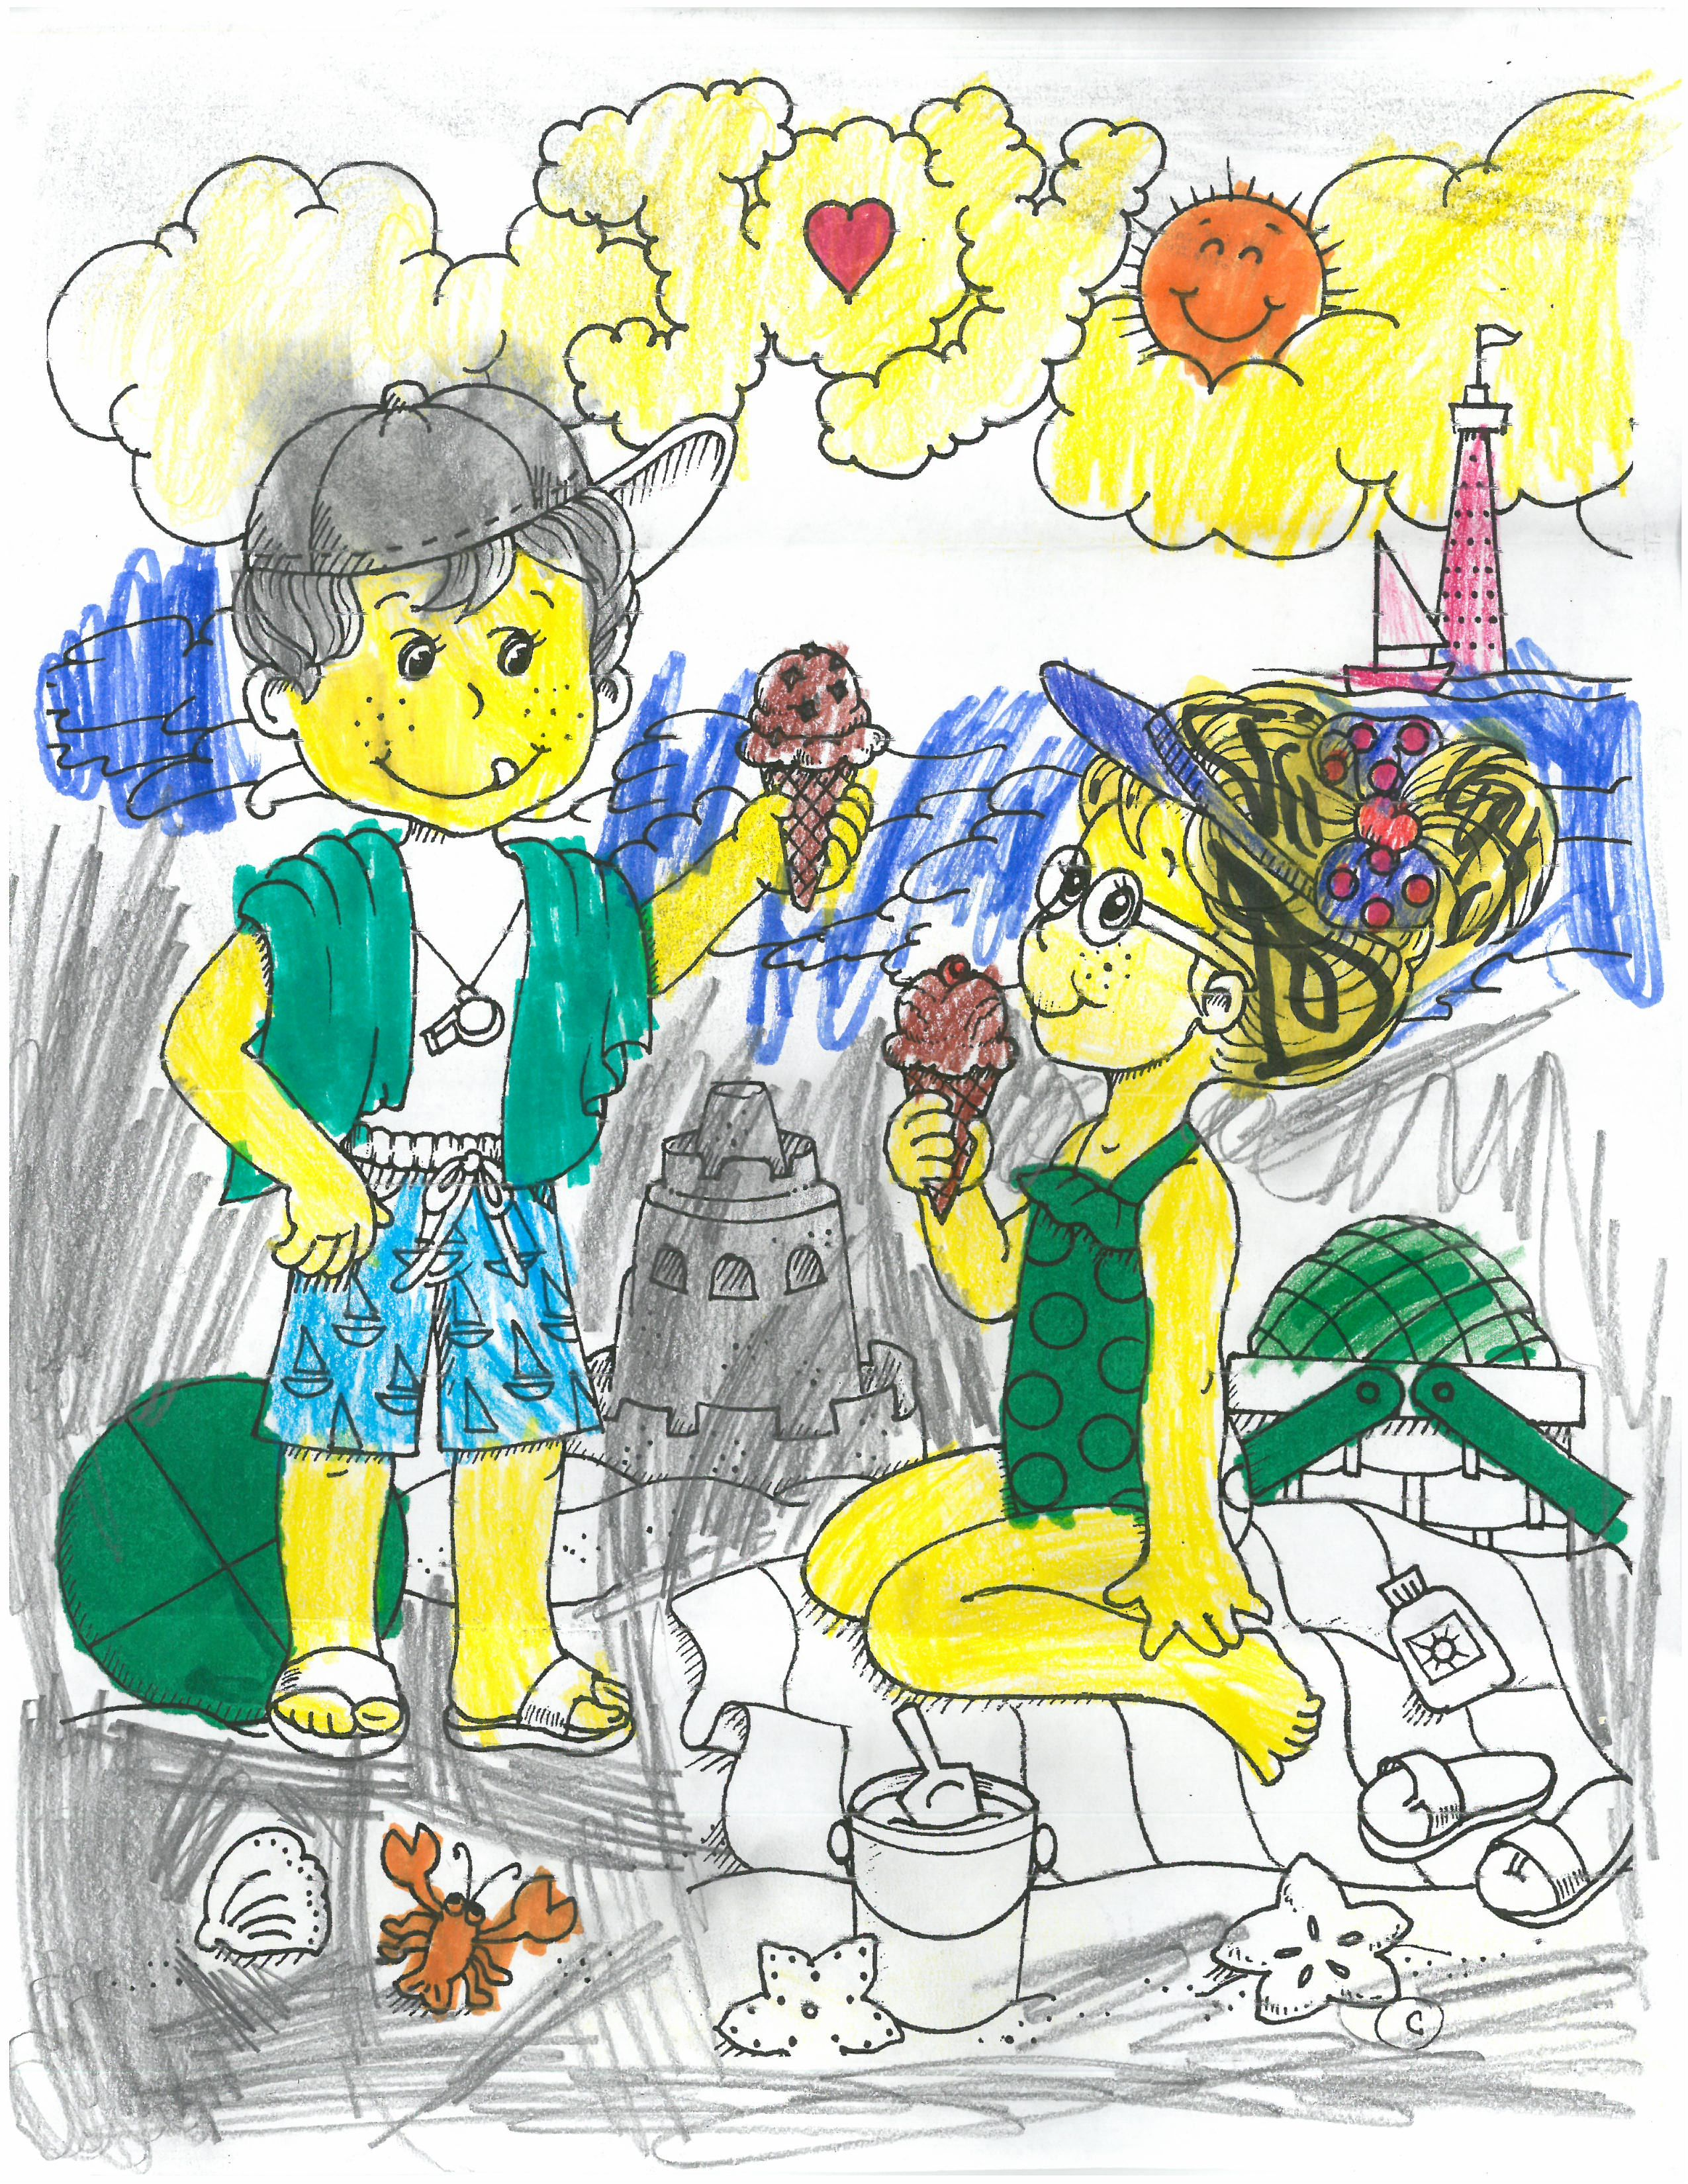 Joy August coloring competition submission from Riley, age 8